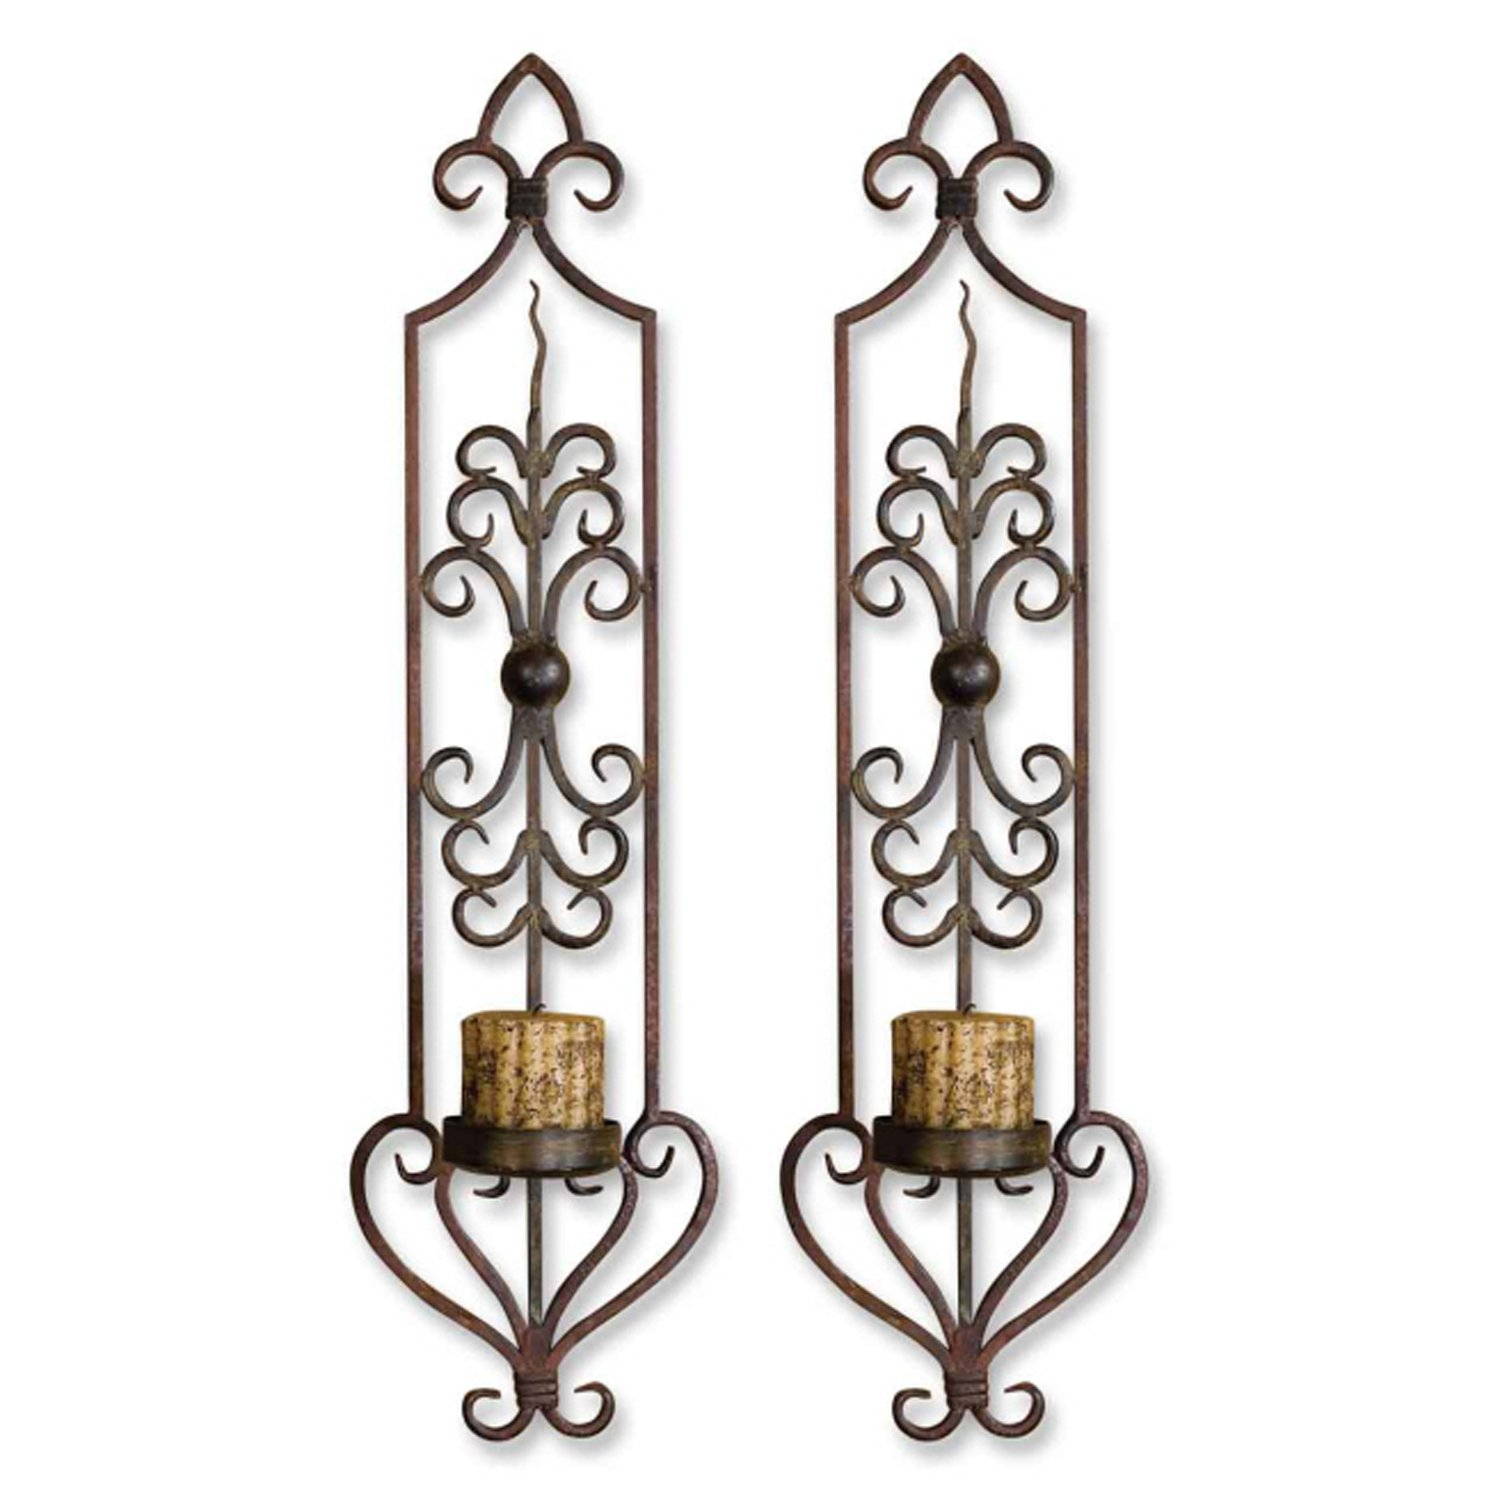 Uttermost 30 by 6-1/2 by 8-Inch Privas Wall Sconces, Set of 2